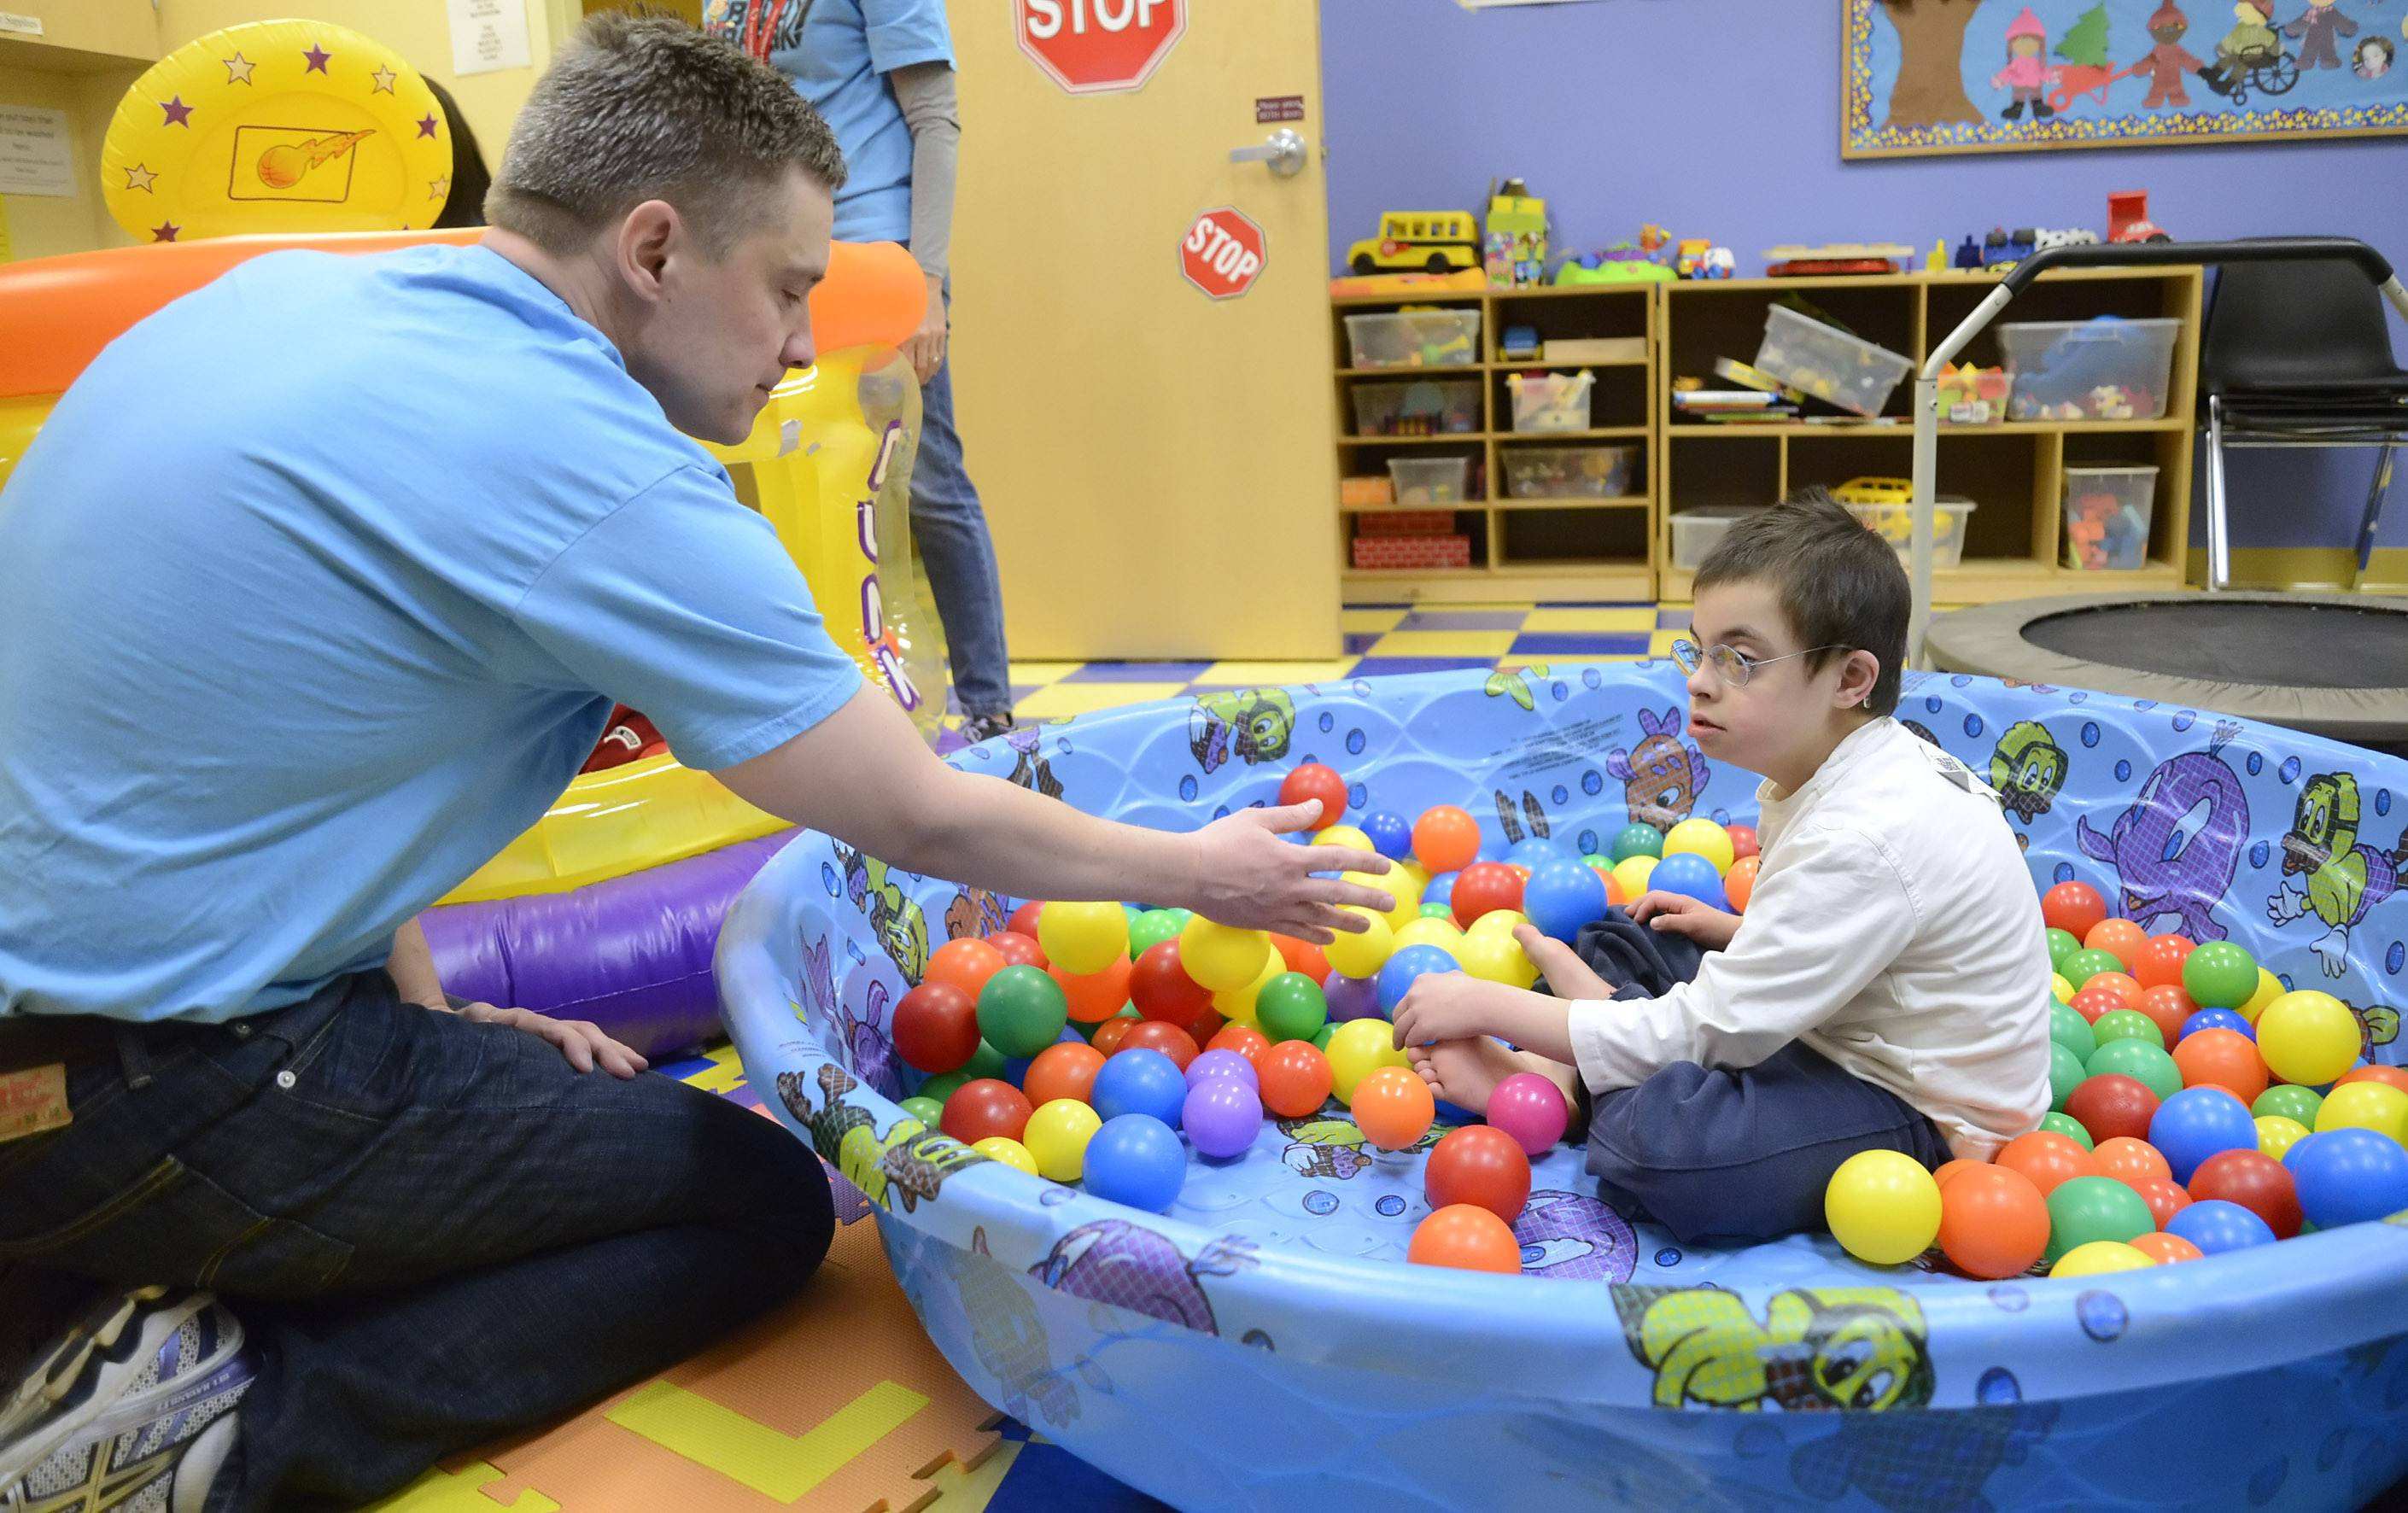 Keith Christophersen of Aurora helps pile up plastic balls in a pool for Michael Pavnica, 7, of Batavia, at a Nathaniel's Hope Buddy Break program at First Baptist Church in Geneva. Michael enjoyed kicking his legs, sending the balls flying through the air.